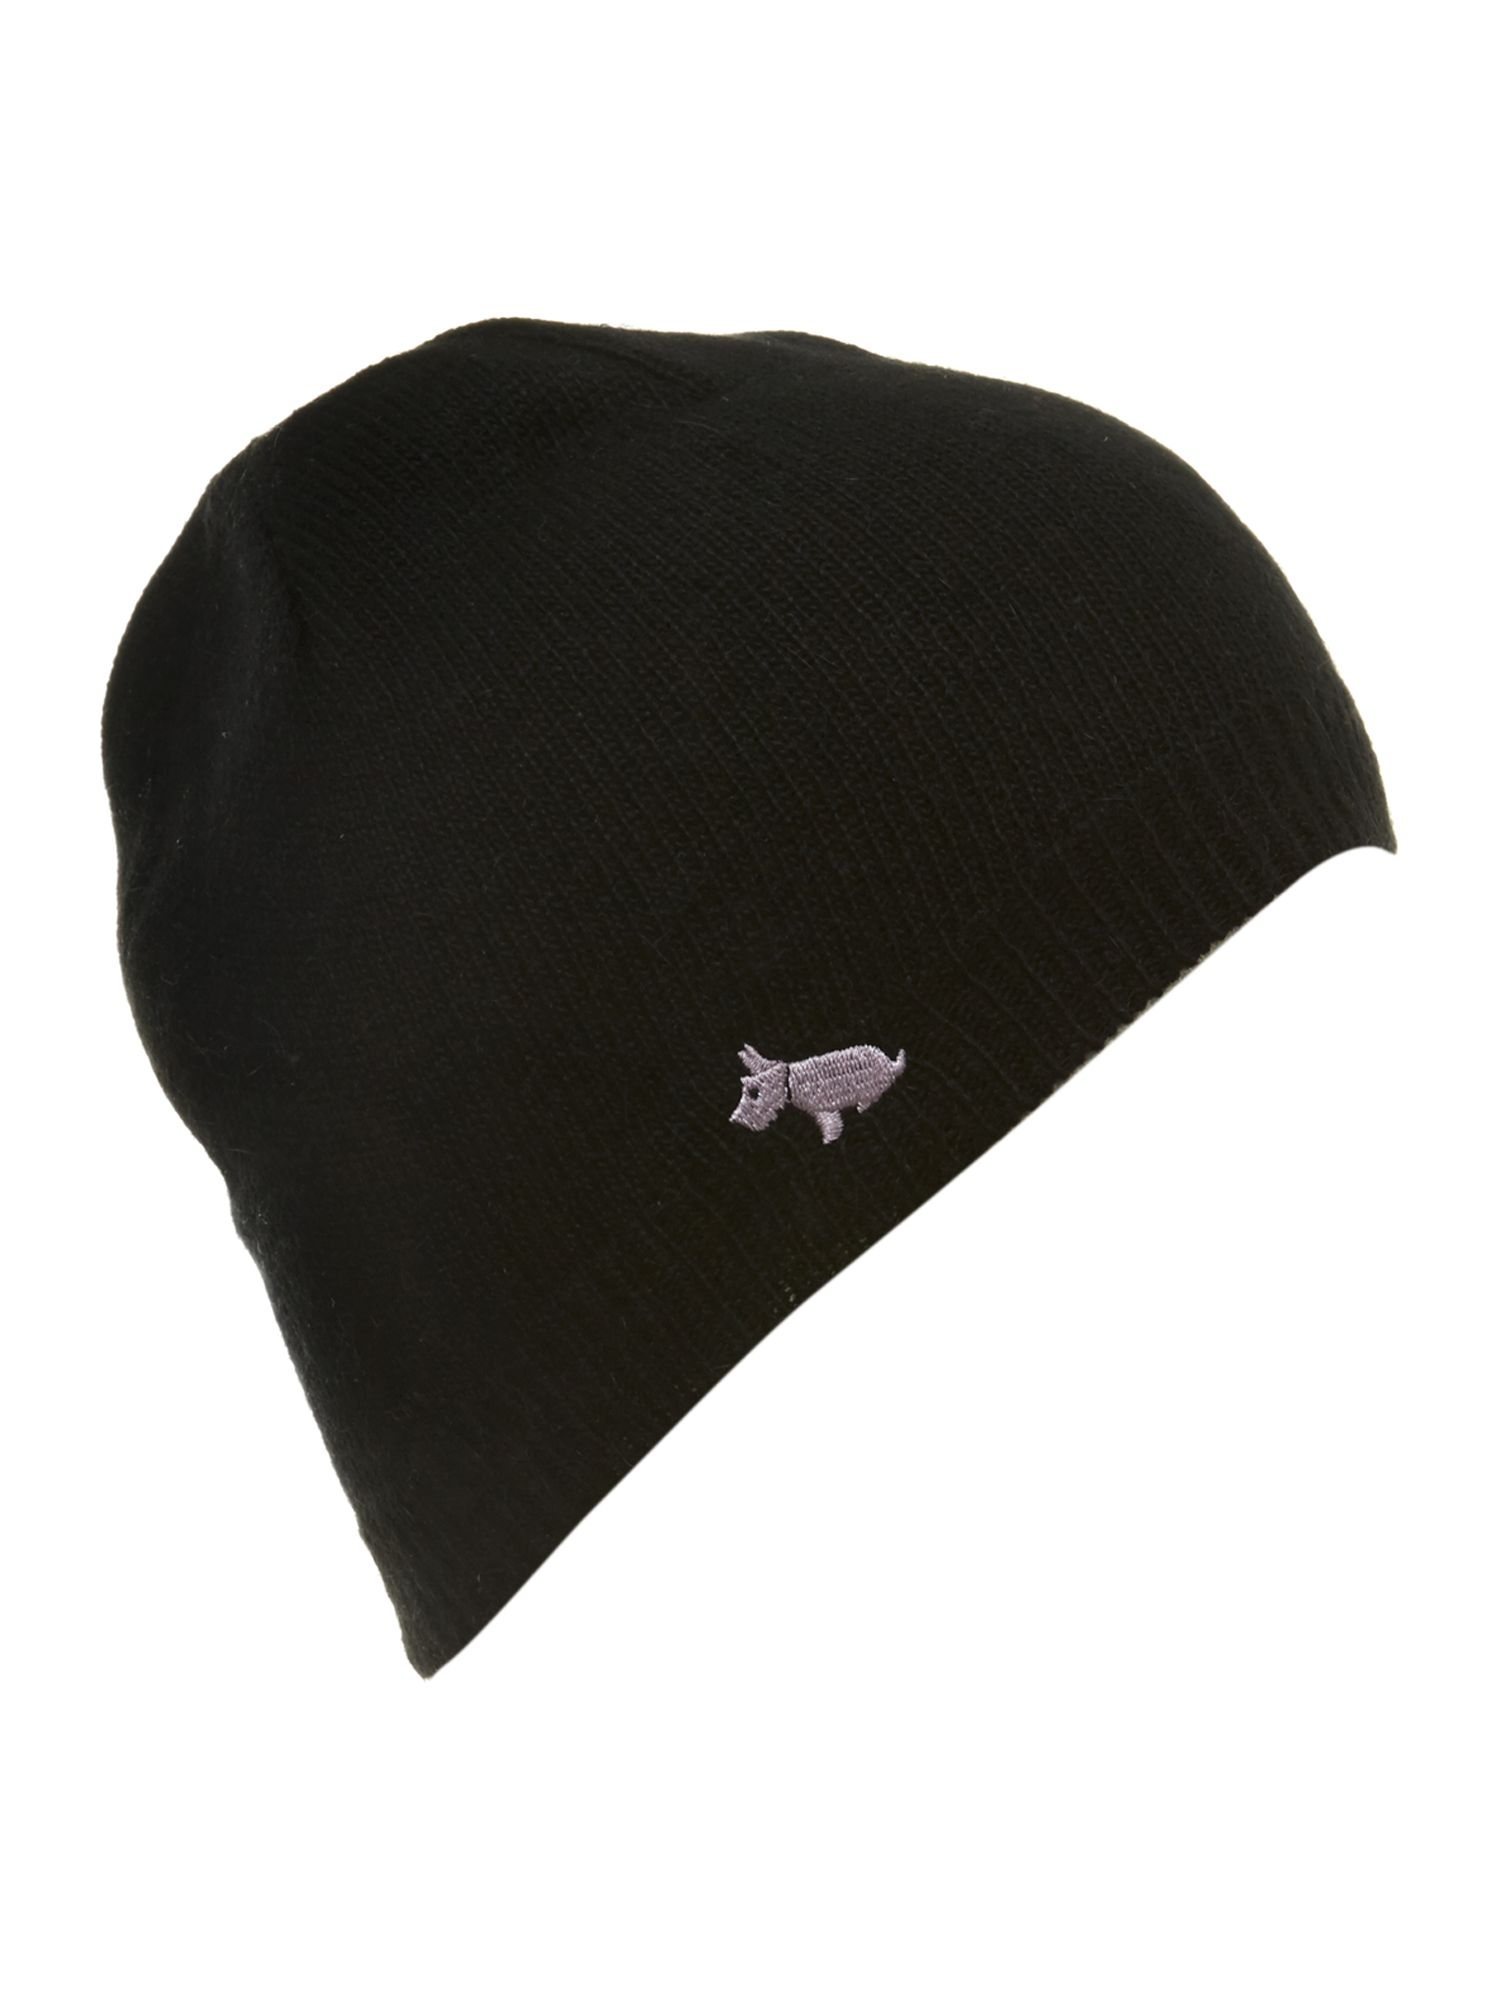 Knitted beanie with embroidered dog